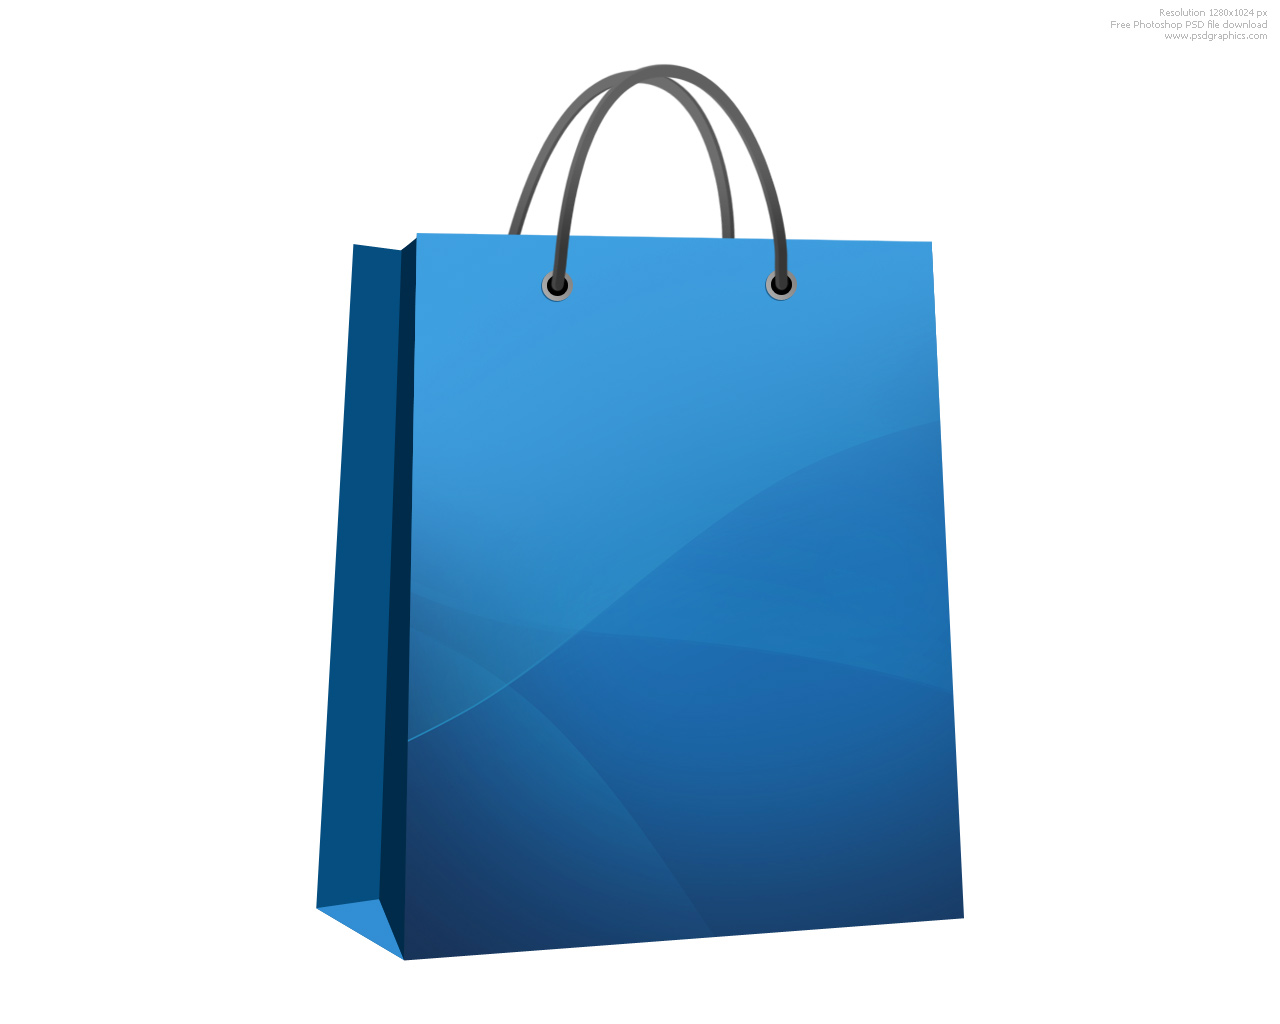 & SHOPPING BAGS. Retail packaging is the key to making your retail products sell.